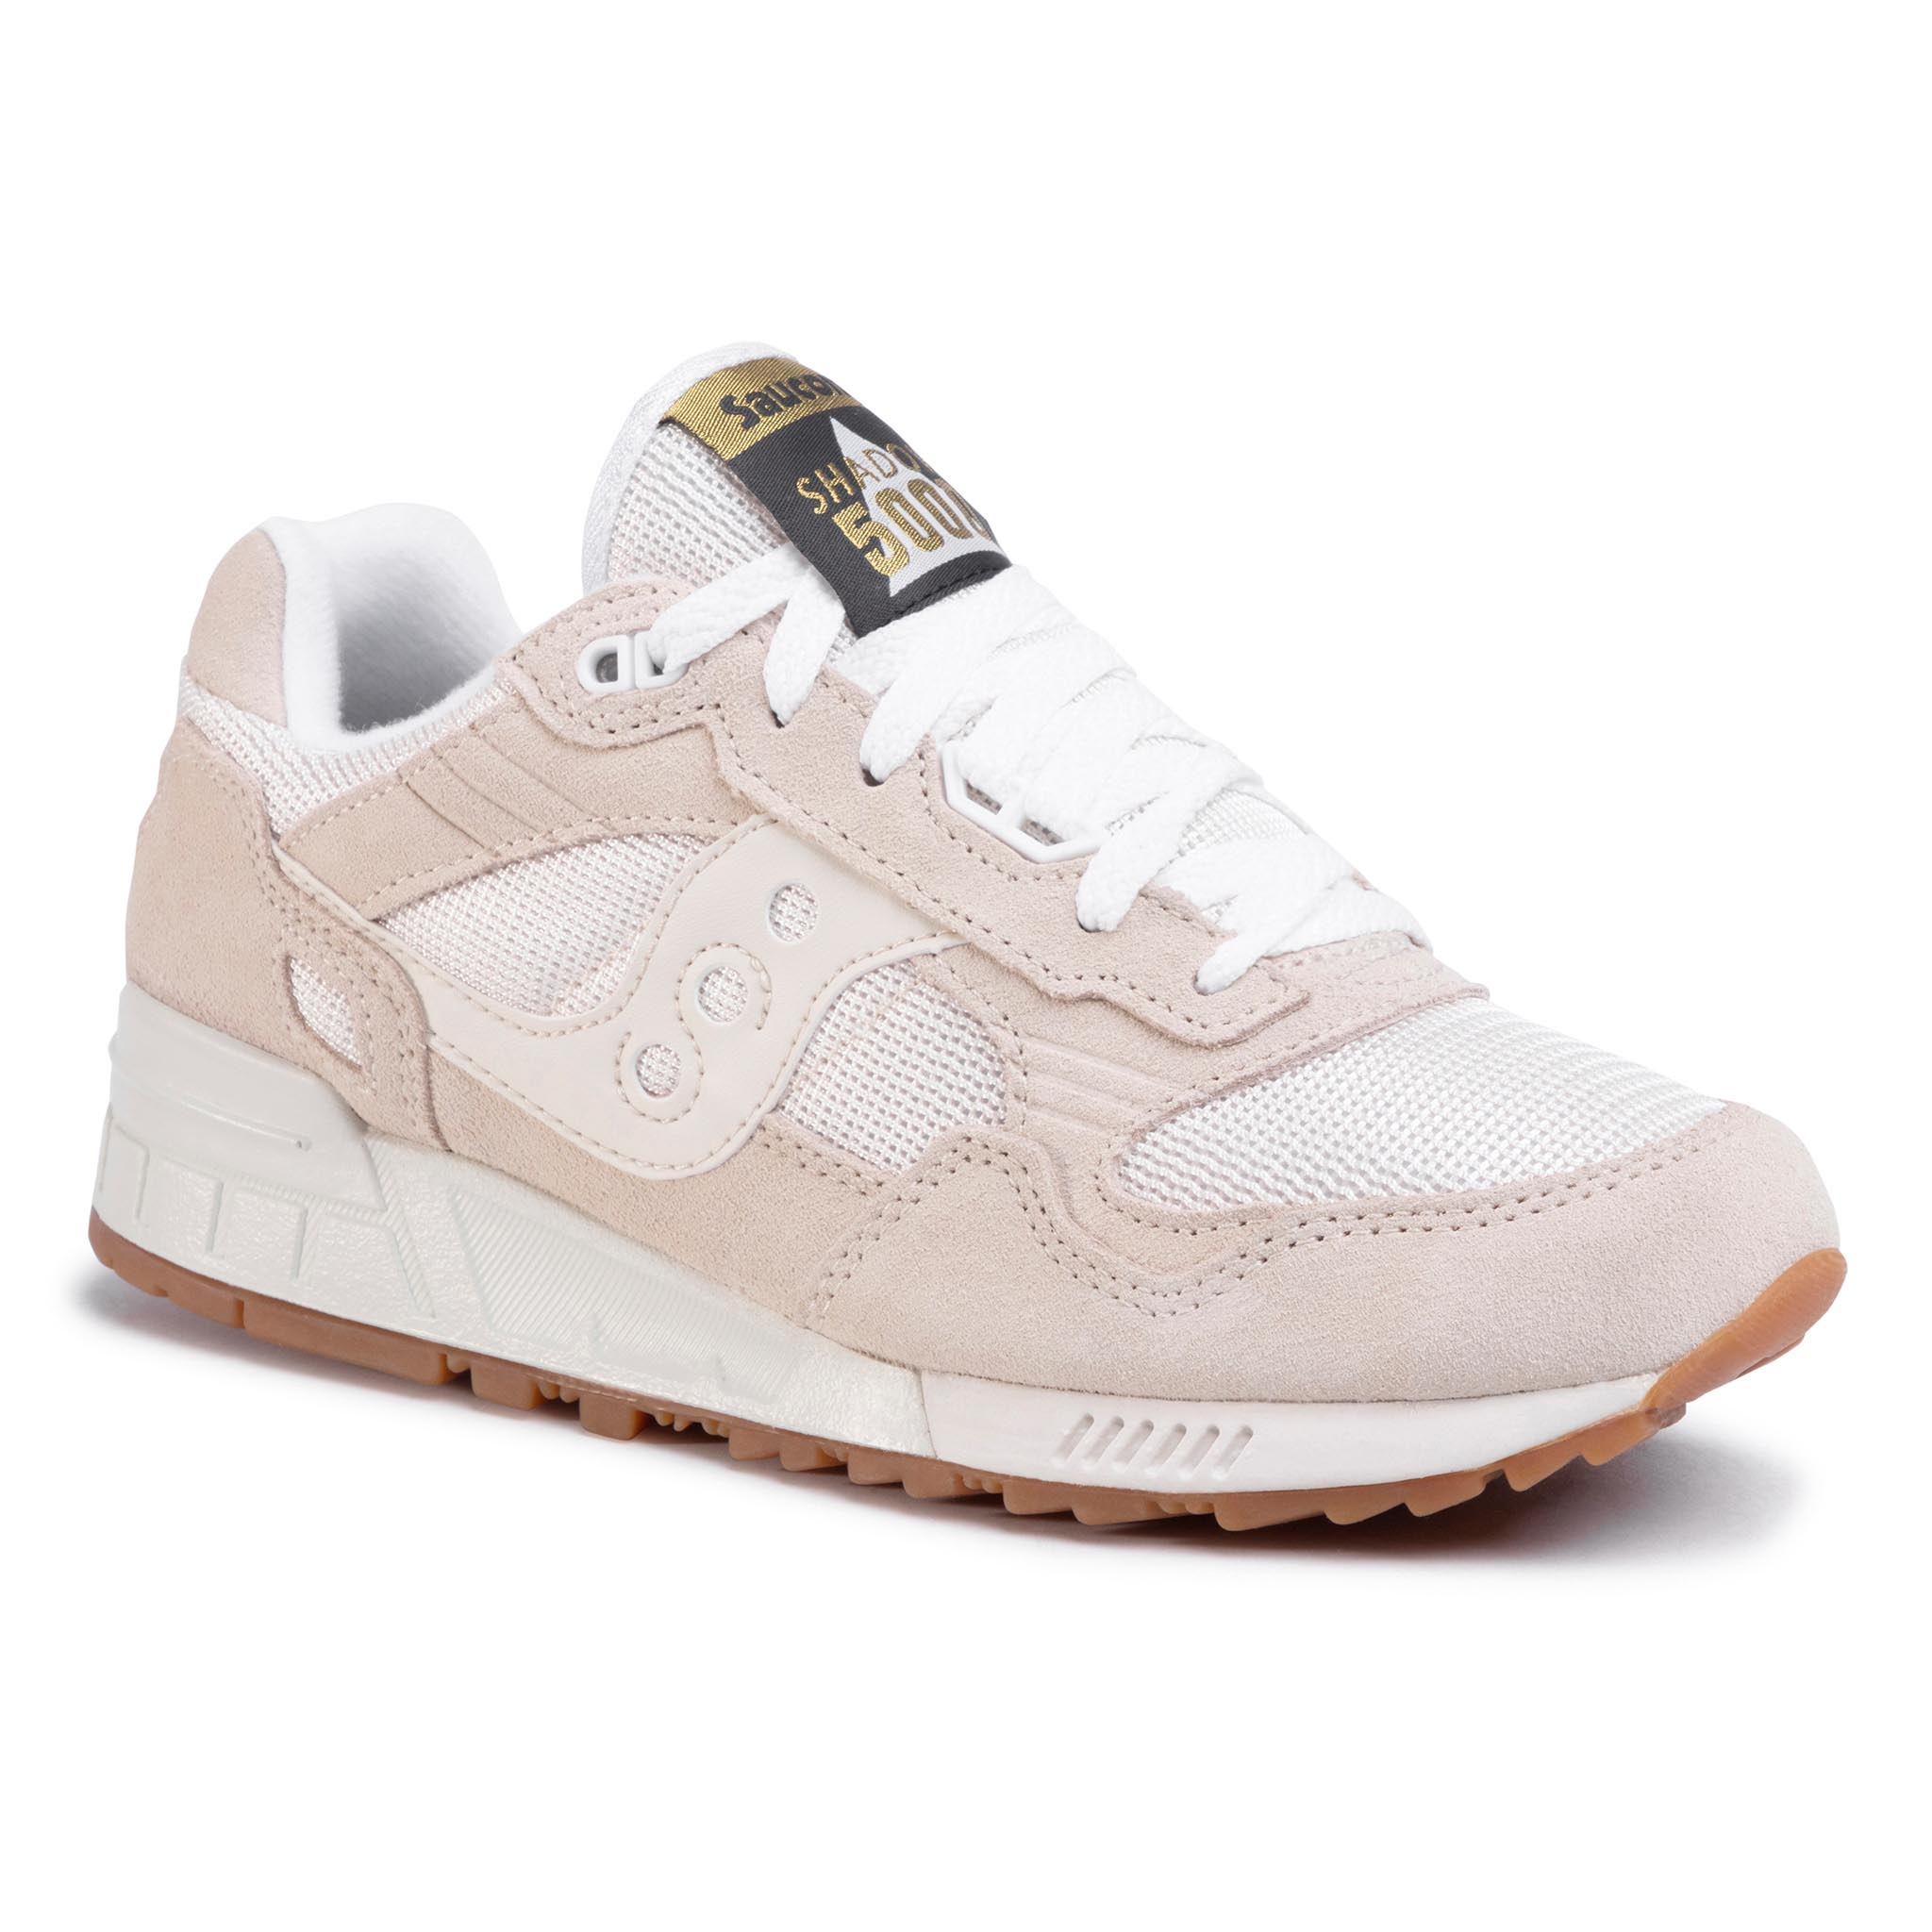 Sneakers SAUCONY - Shadow 5000 S70404-22 Tan/Wht